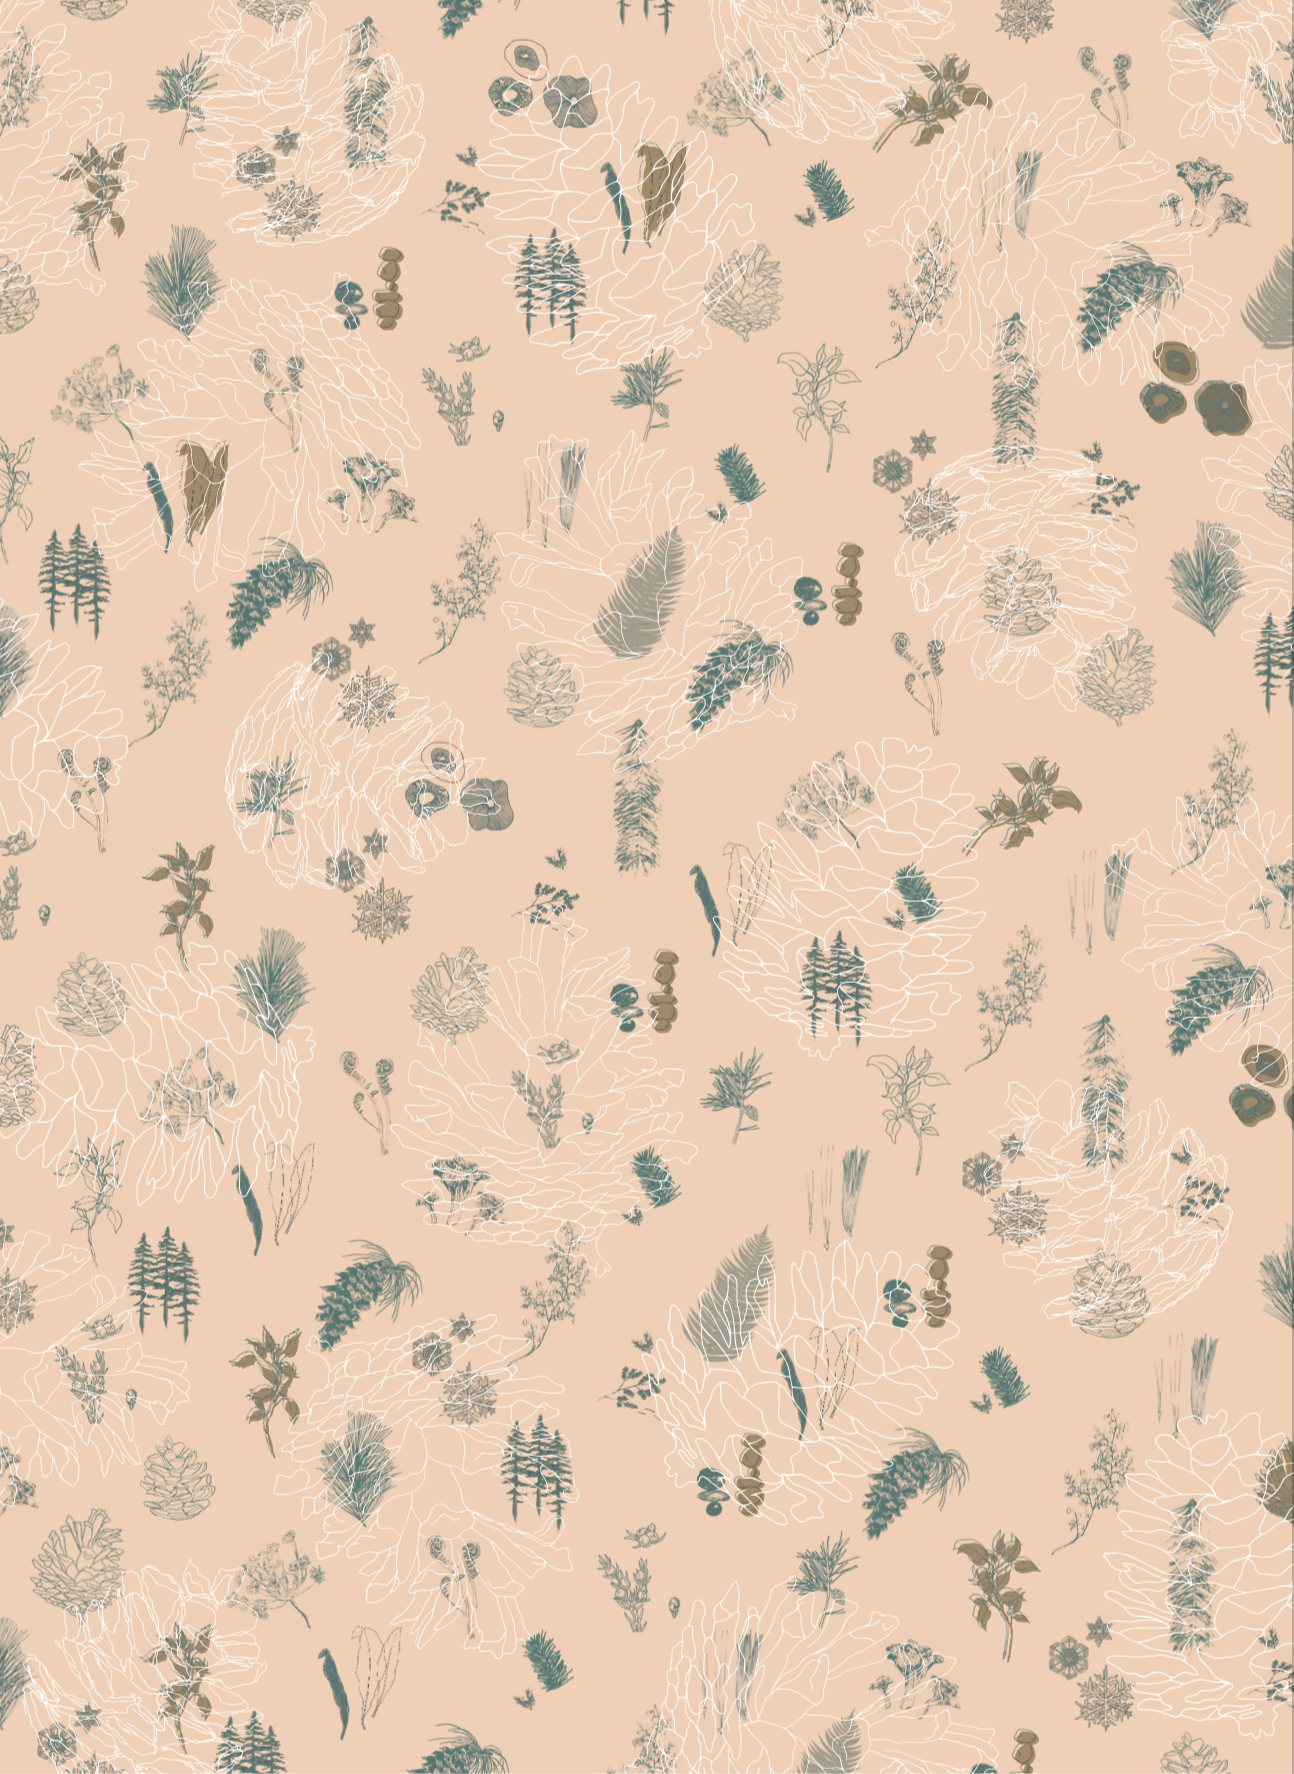 Wrapping Paper Design and Illustrations | Collab with Siobhan Nelson for Kamp Grizzly